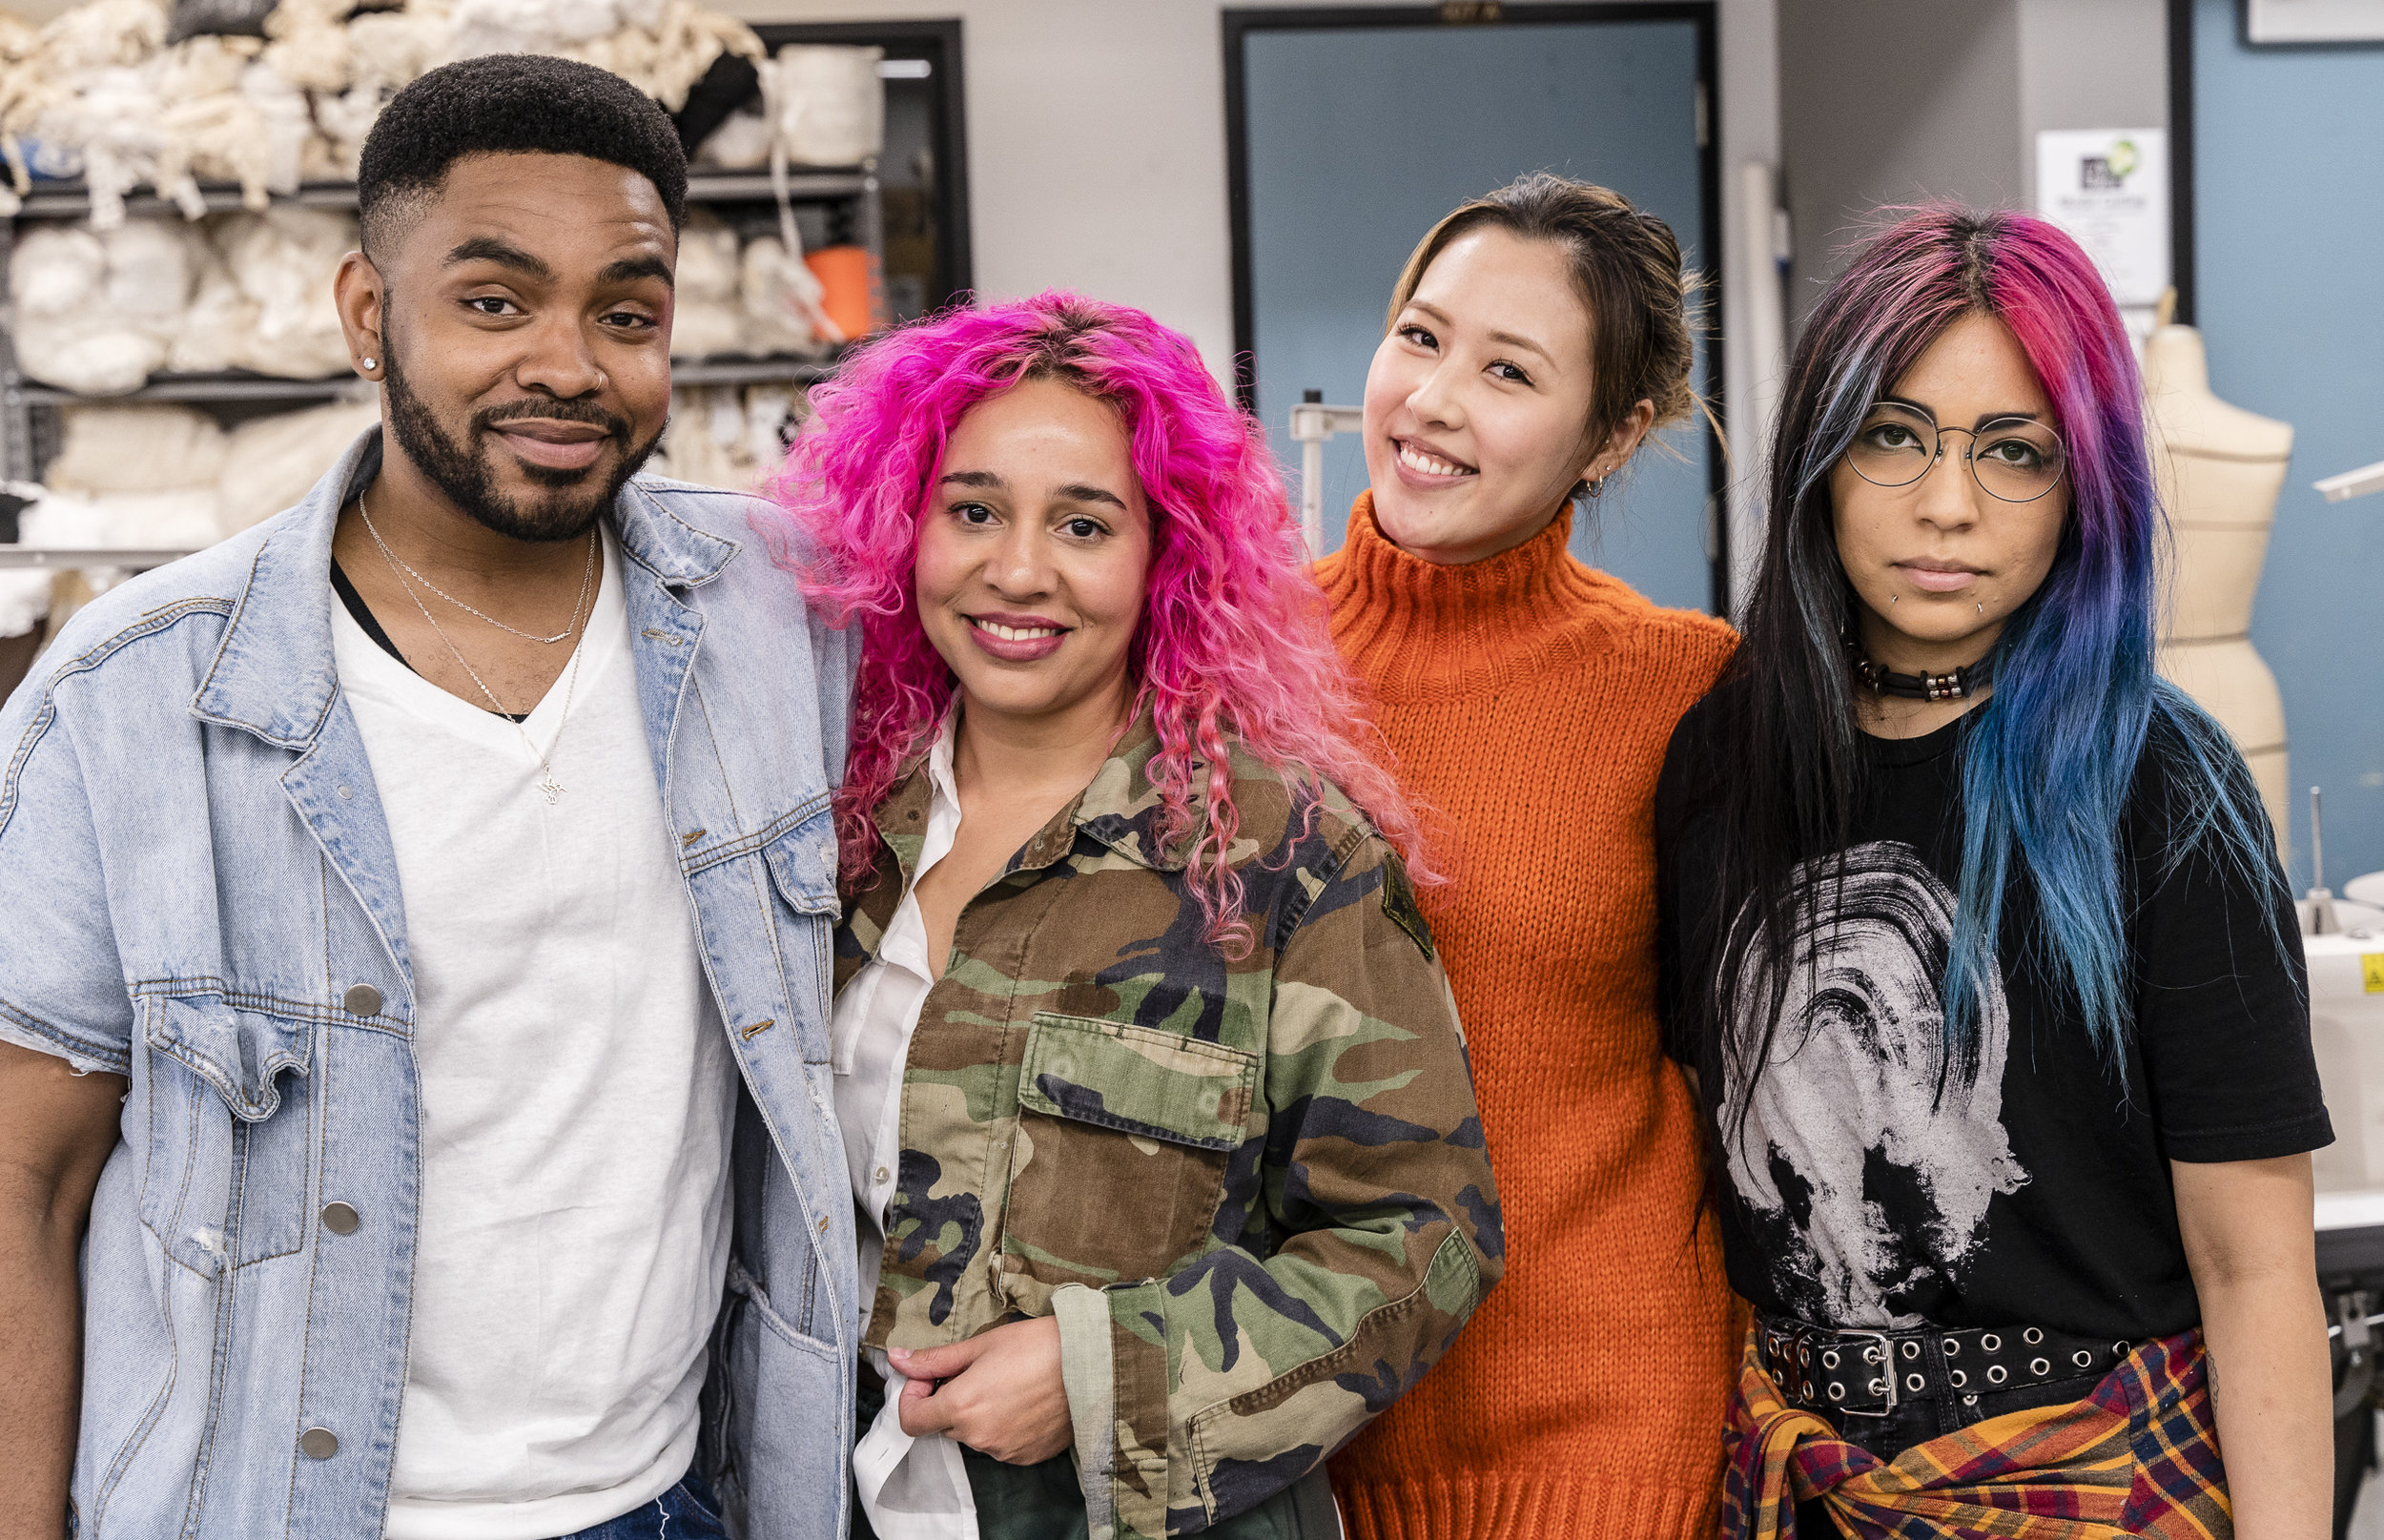 SMC students Durryl Washington, Angela Dillman, Ayano Muramatsu, and B Palomarez preparing for Fashion Design & Merchandising's LA Mode fashion show in their studios on the SMC Main Campus on Thursday, March 28, 2019. Fashion Designers Washington and Palomarez will have their work featured in the show, and Fashion Merchandisers Dillman and Muramatsu are producing the show including promoting it on social media. LA Mode will be held at Barnum Hall in Santa Monica on Thursday, June 13 at 7 pm. (Glenn Zucman/The Corsair)